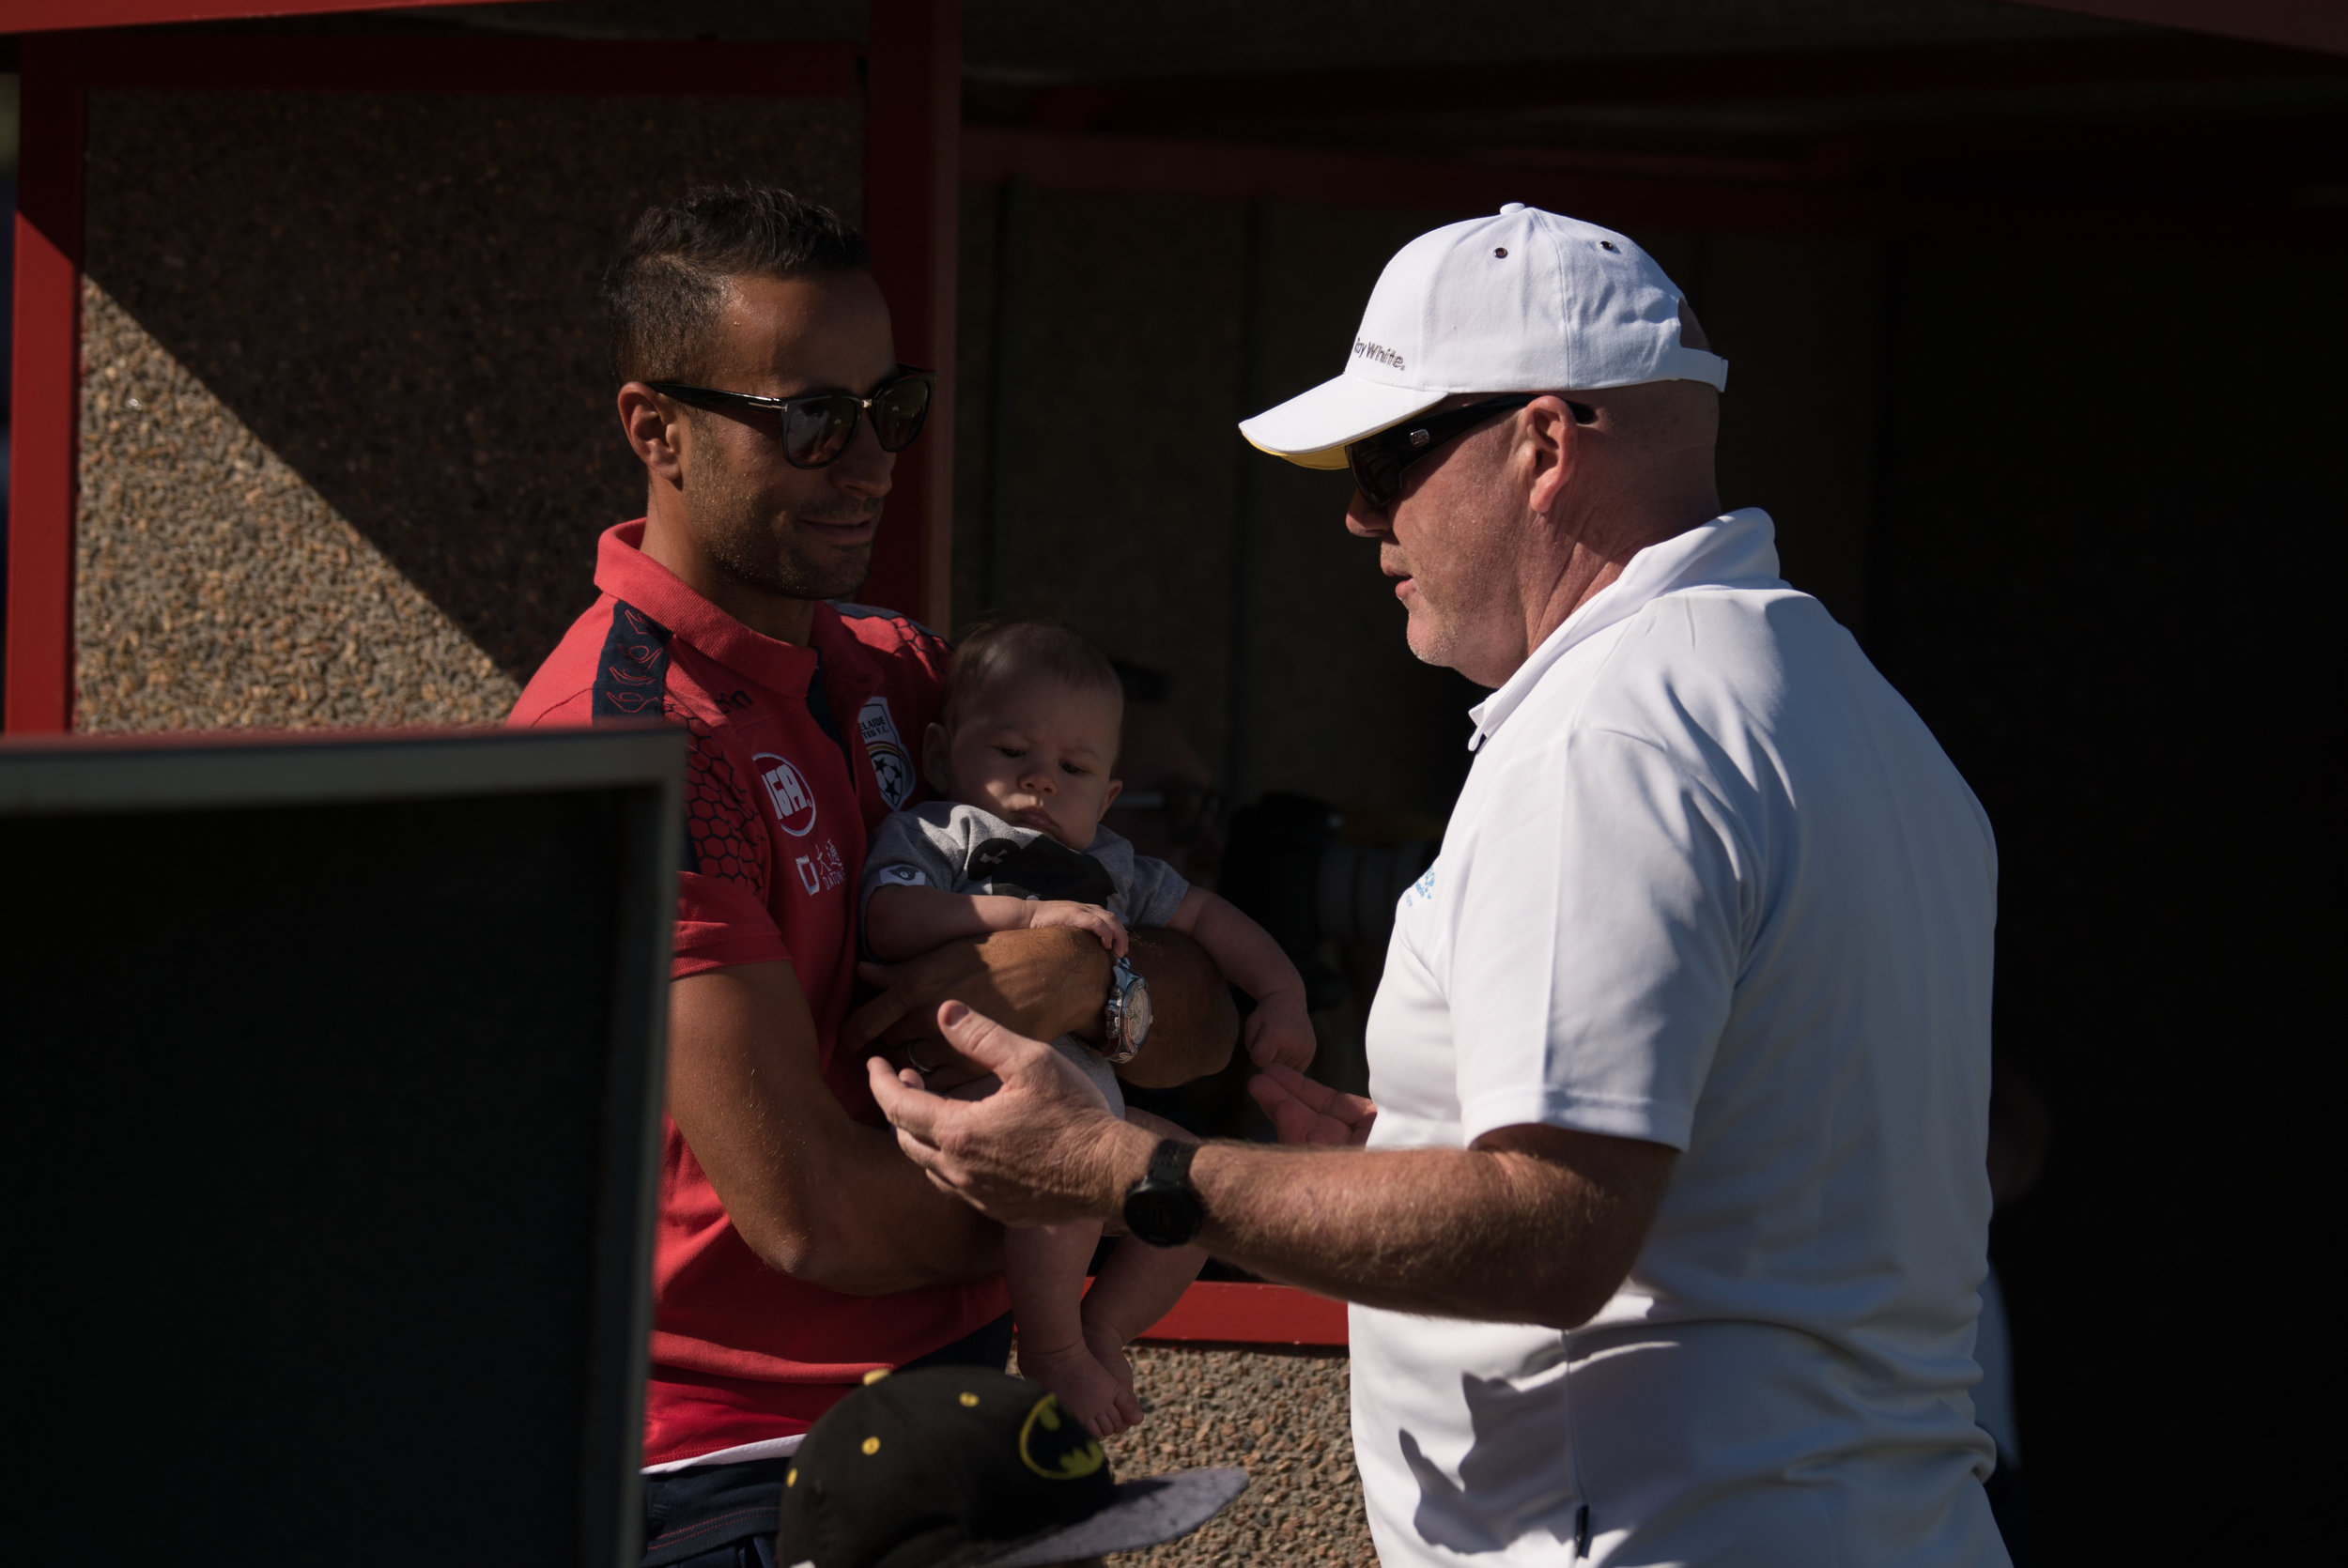 Great to see Jars displaying his multi tasking skills, while not only captaining the white team, but taking it upon himself to coach superstar Adelaide United player and king of the kids, Tarek Elrich, how AUFC can win the Asian Champions League. As the true gentleman he is, Tarek took all advice on board.